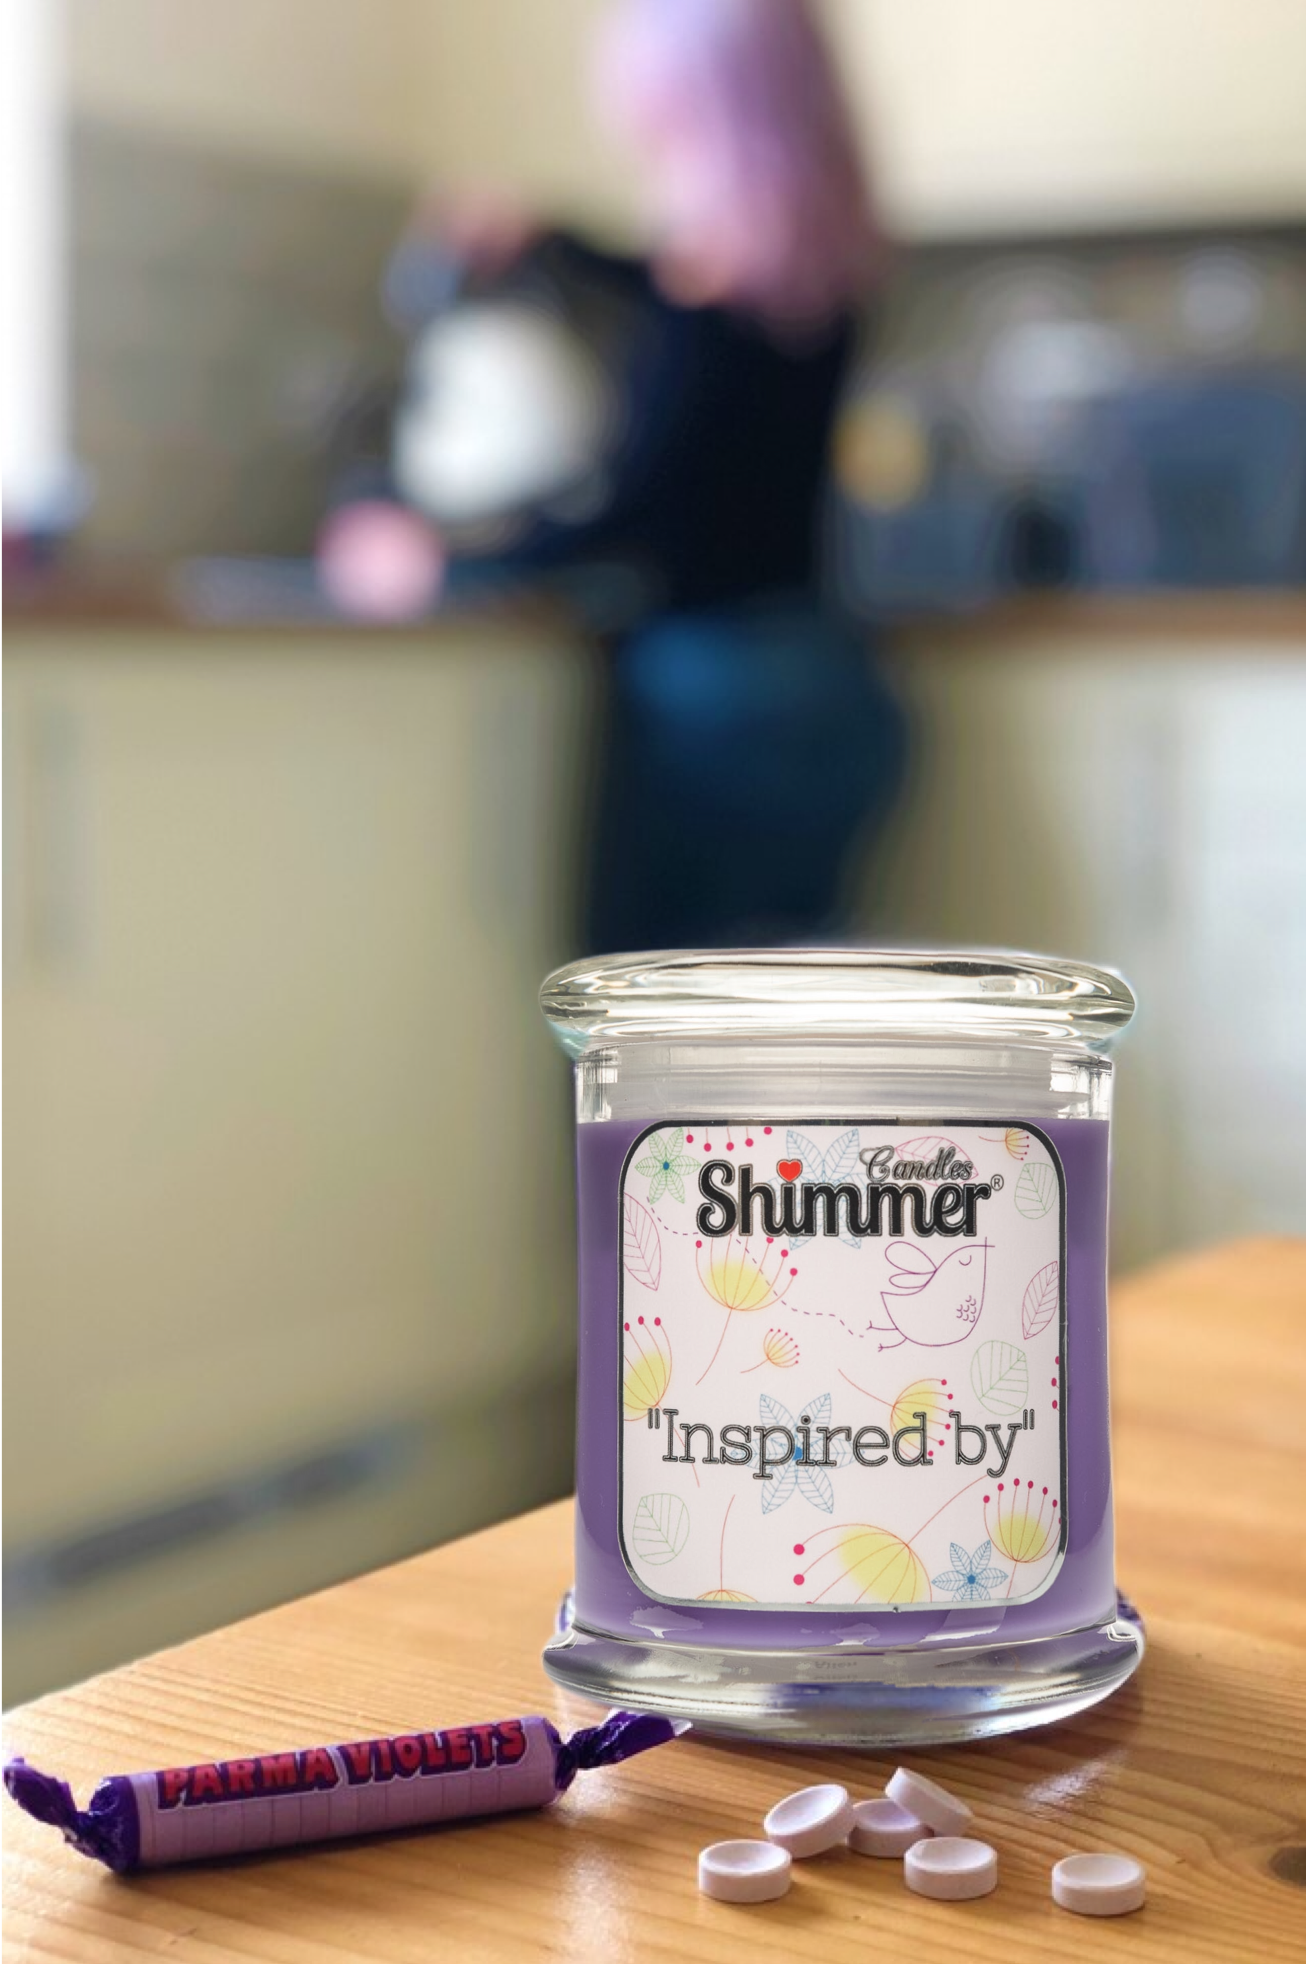 scented candles, wax melts and accessories from SHIMMER